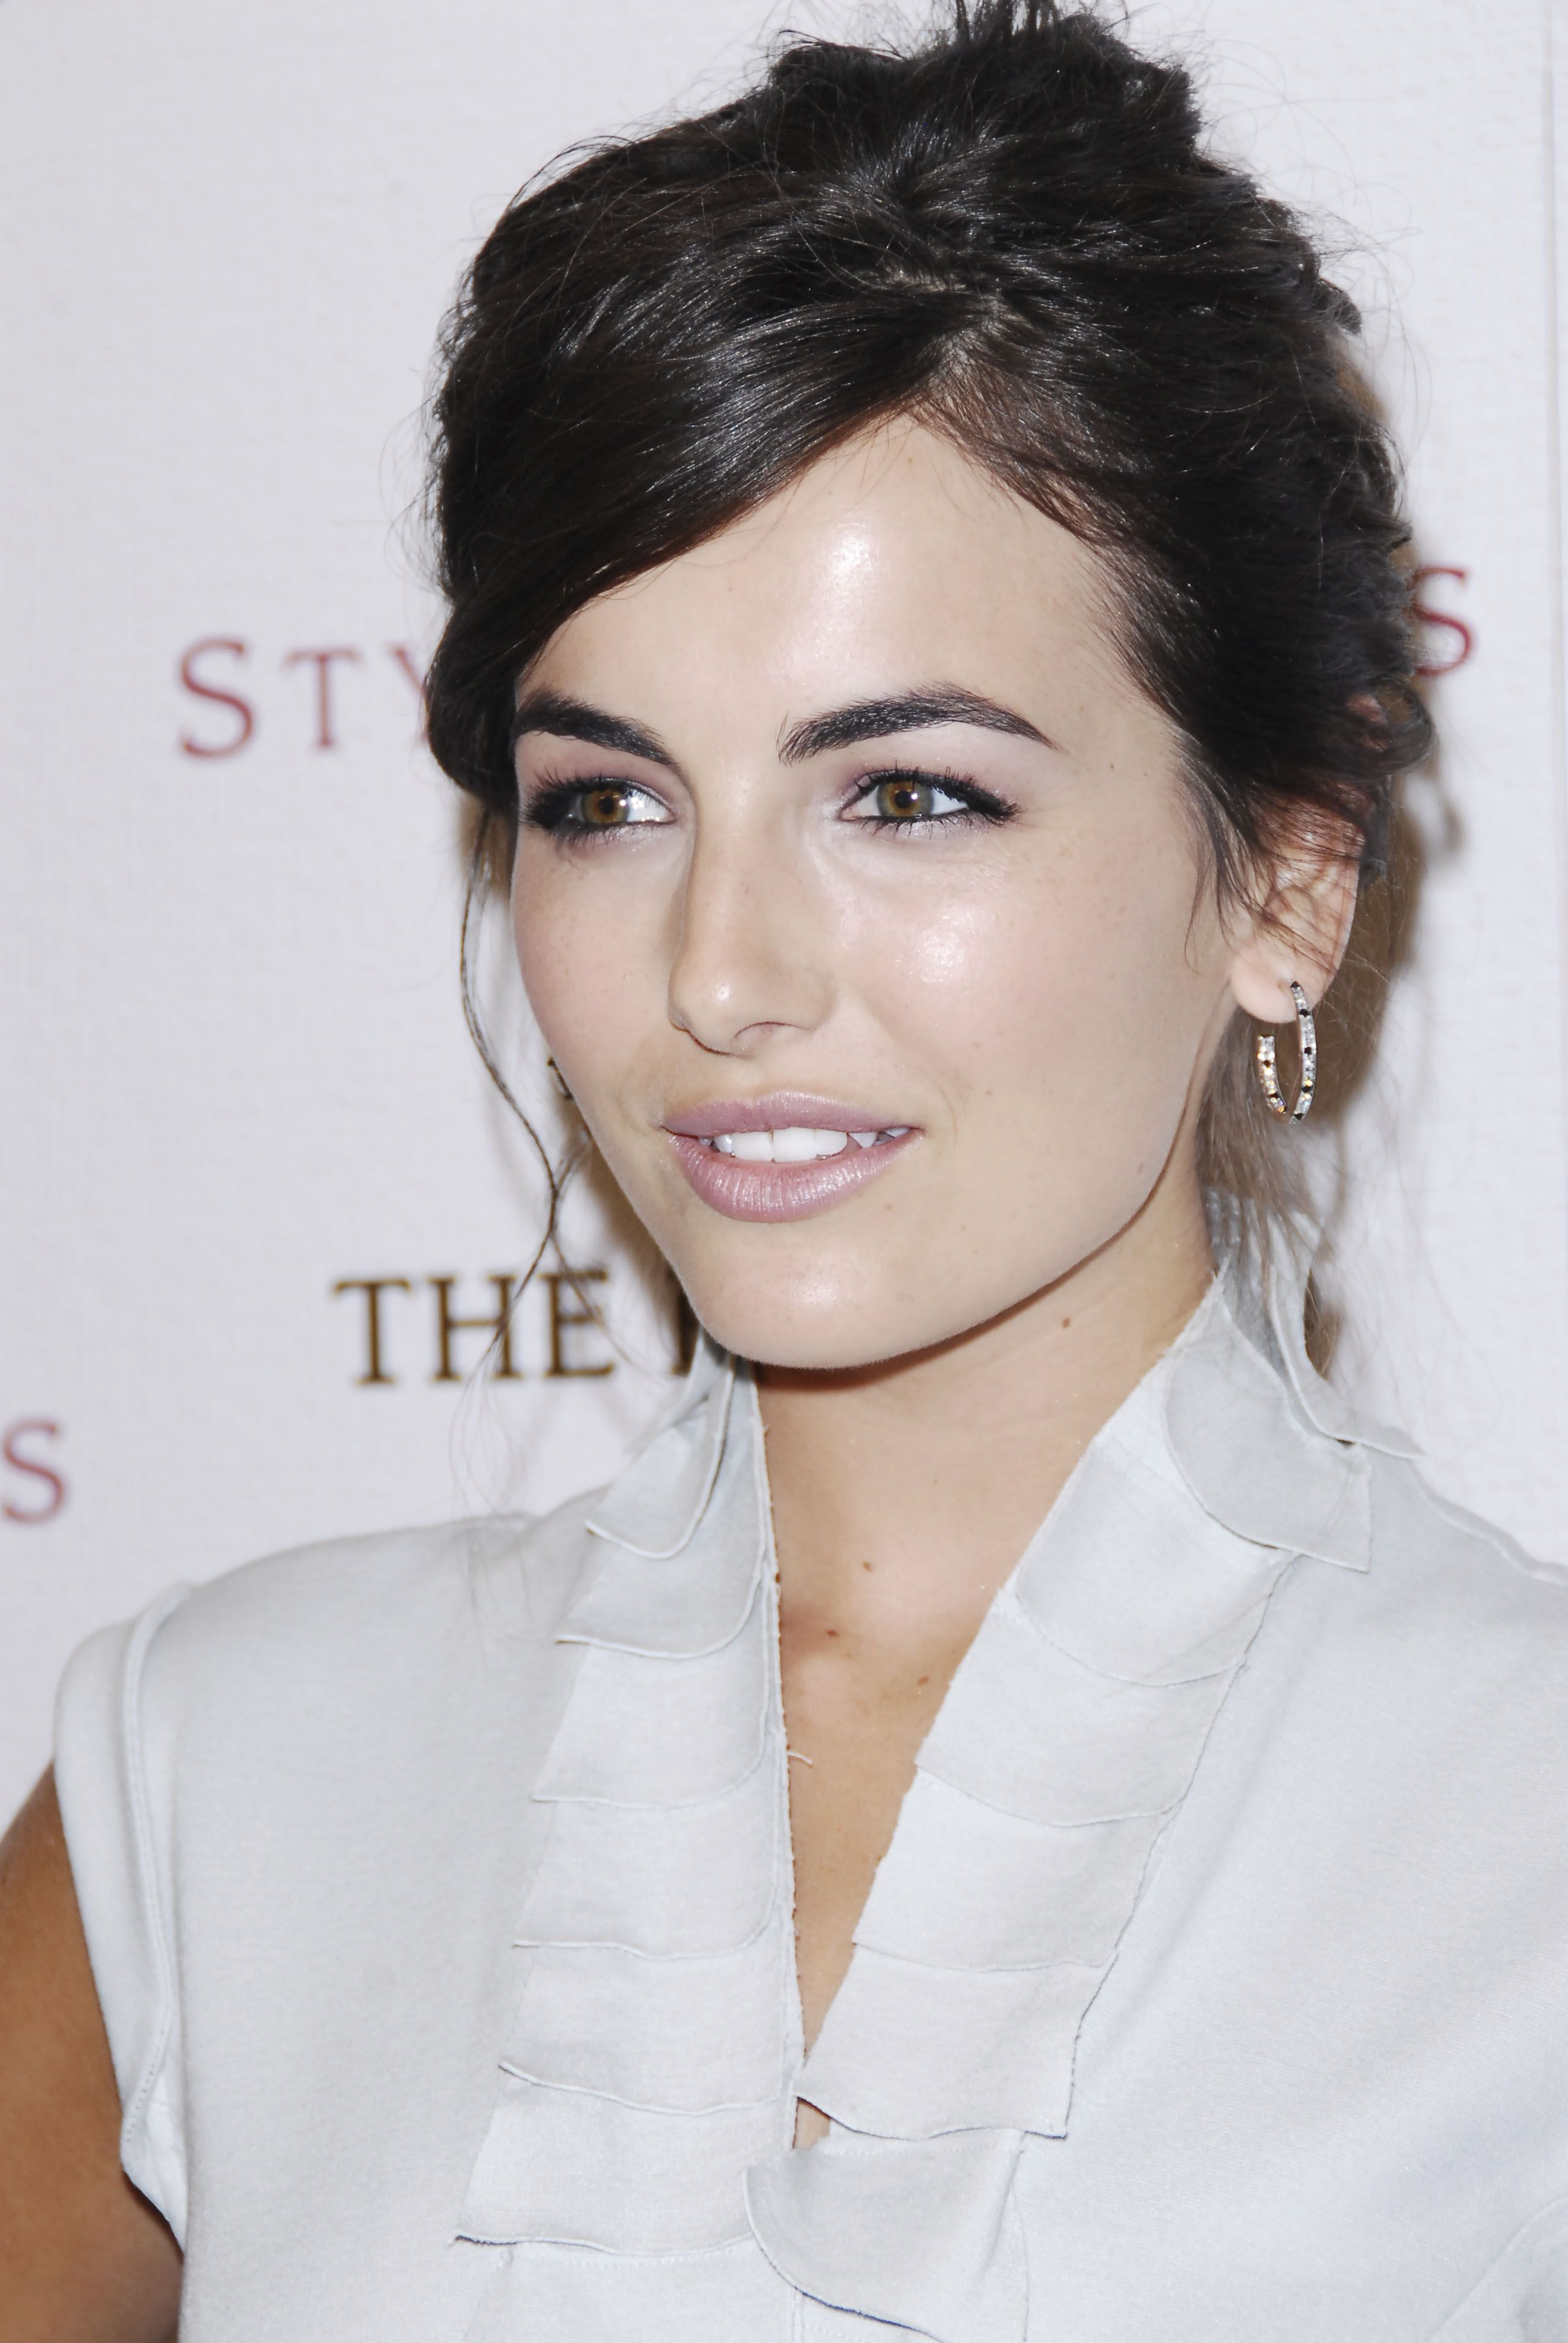 Hacked Camilla Belle naked (27 photos), Pussy, Paparazzi, Selfie, legs 2006